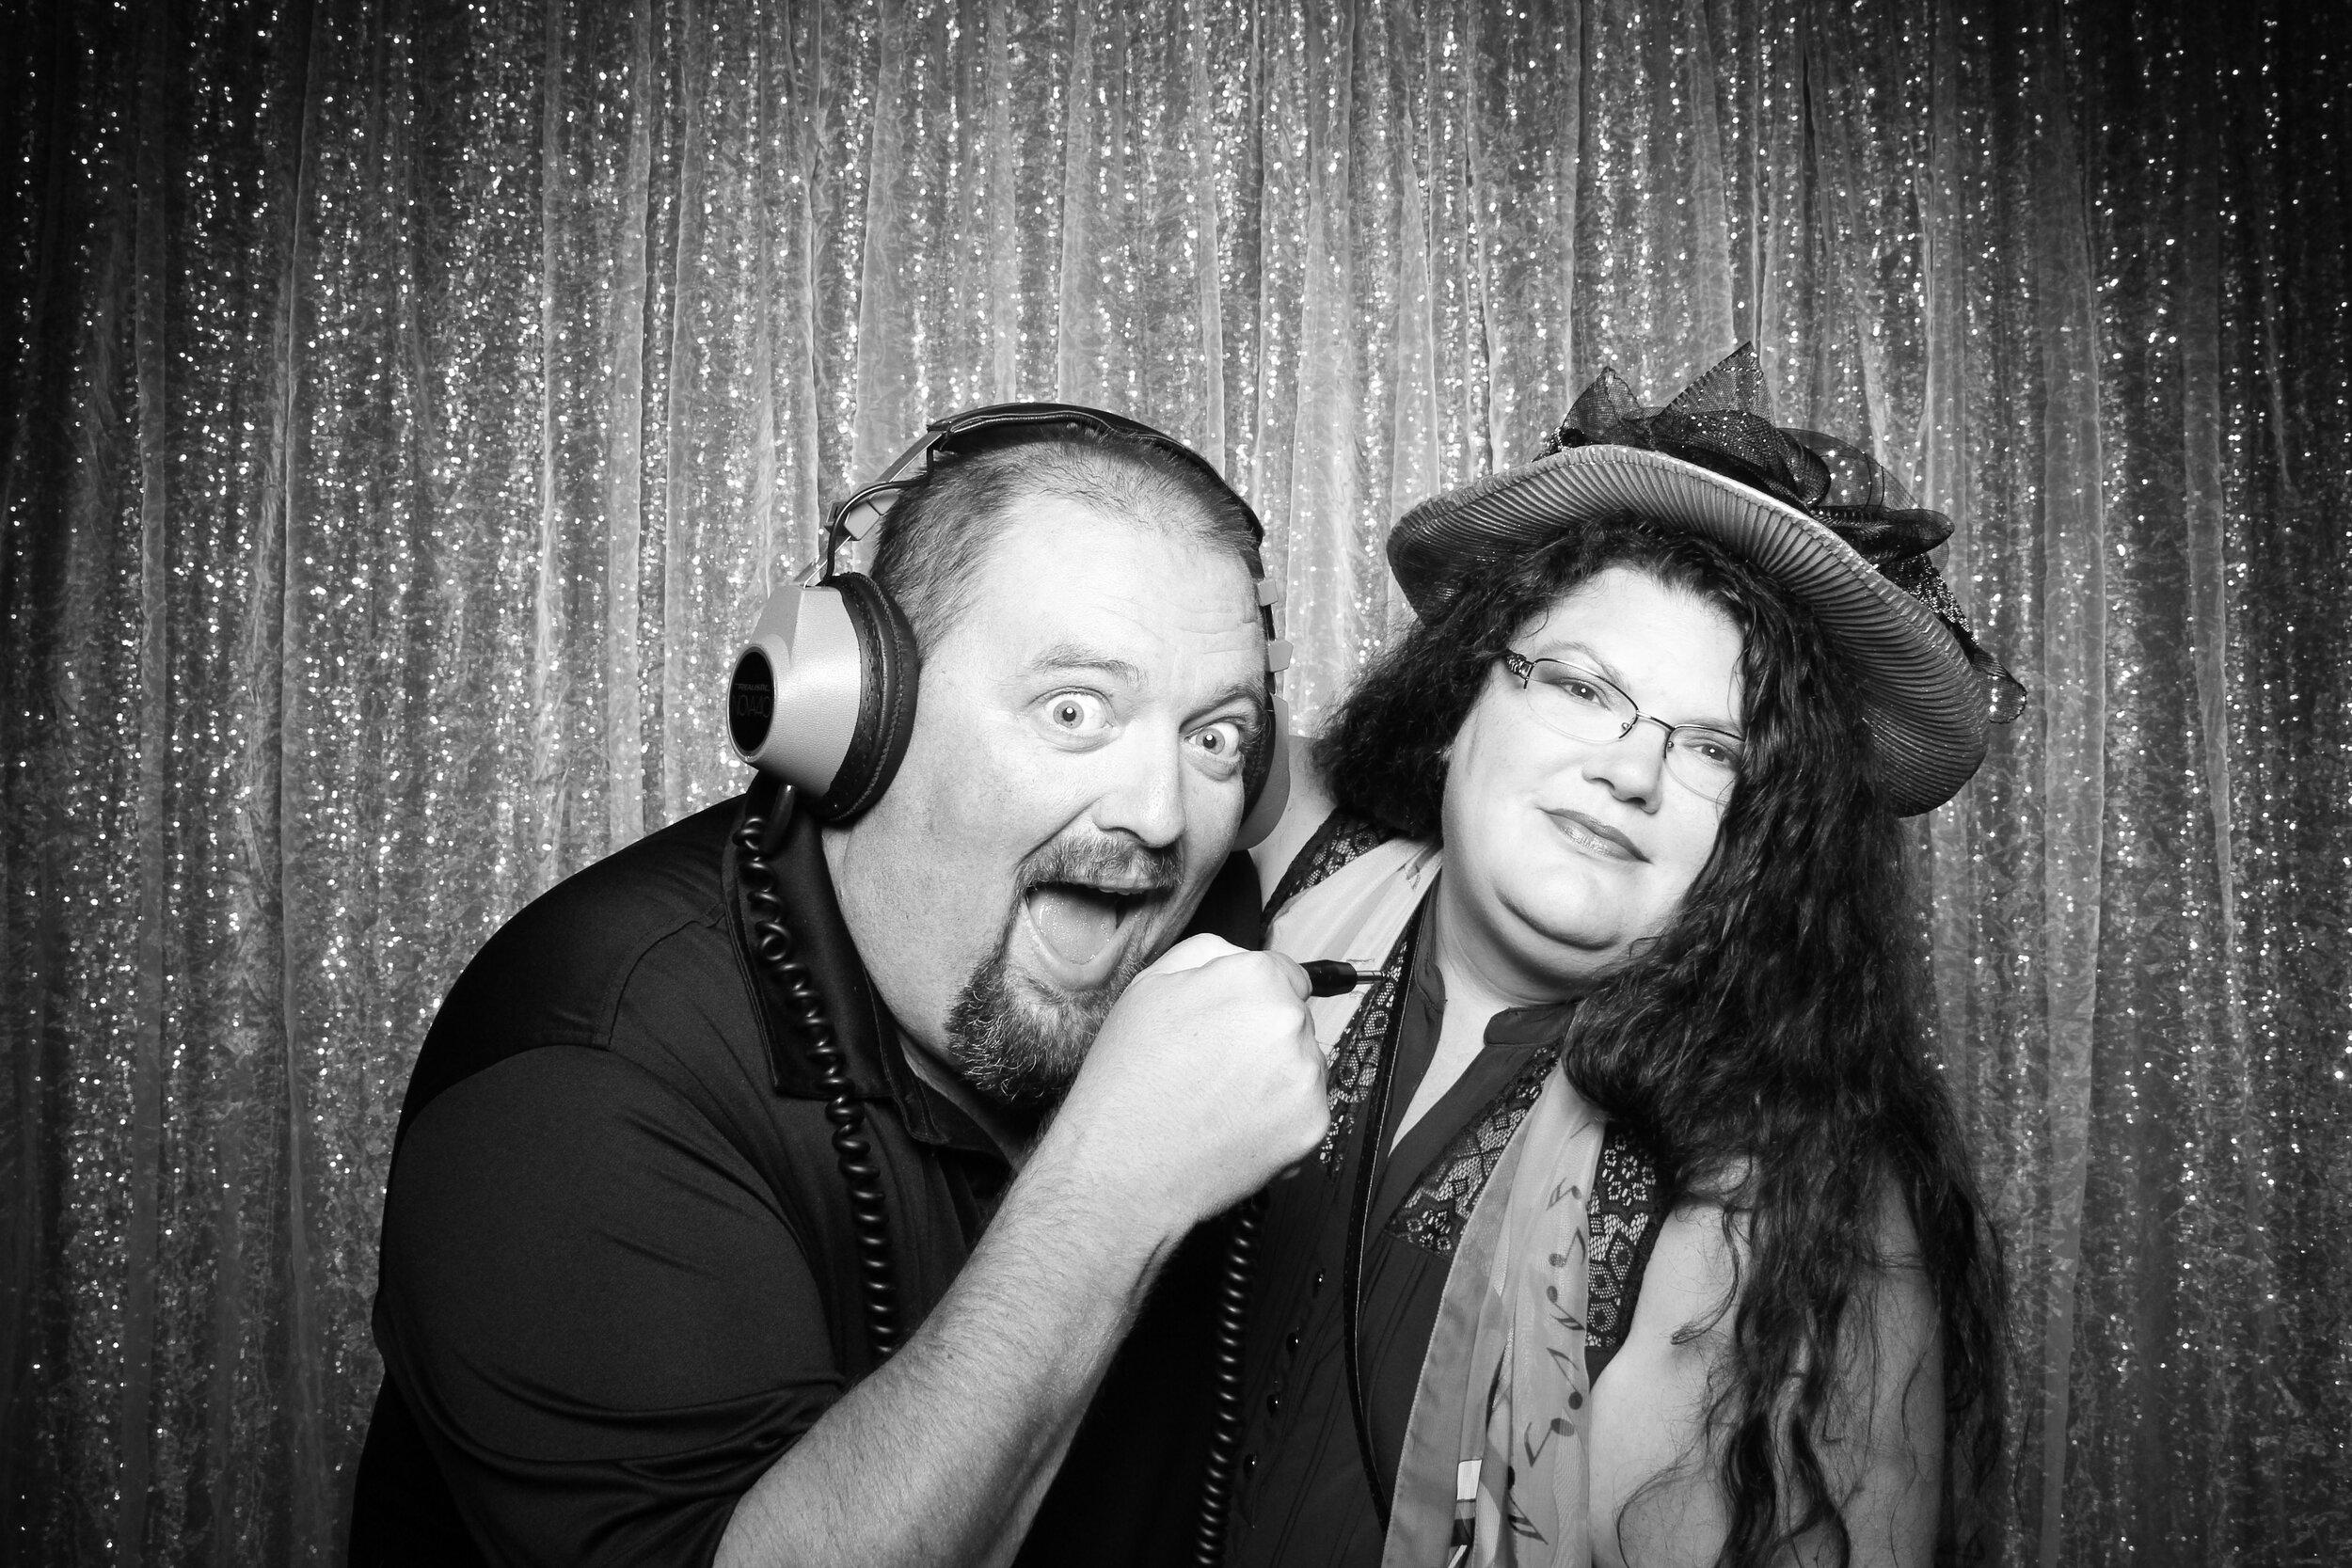 Chicago_Vintage_Wedding_Photobooth_House_of_Blues_16.jpg